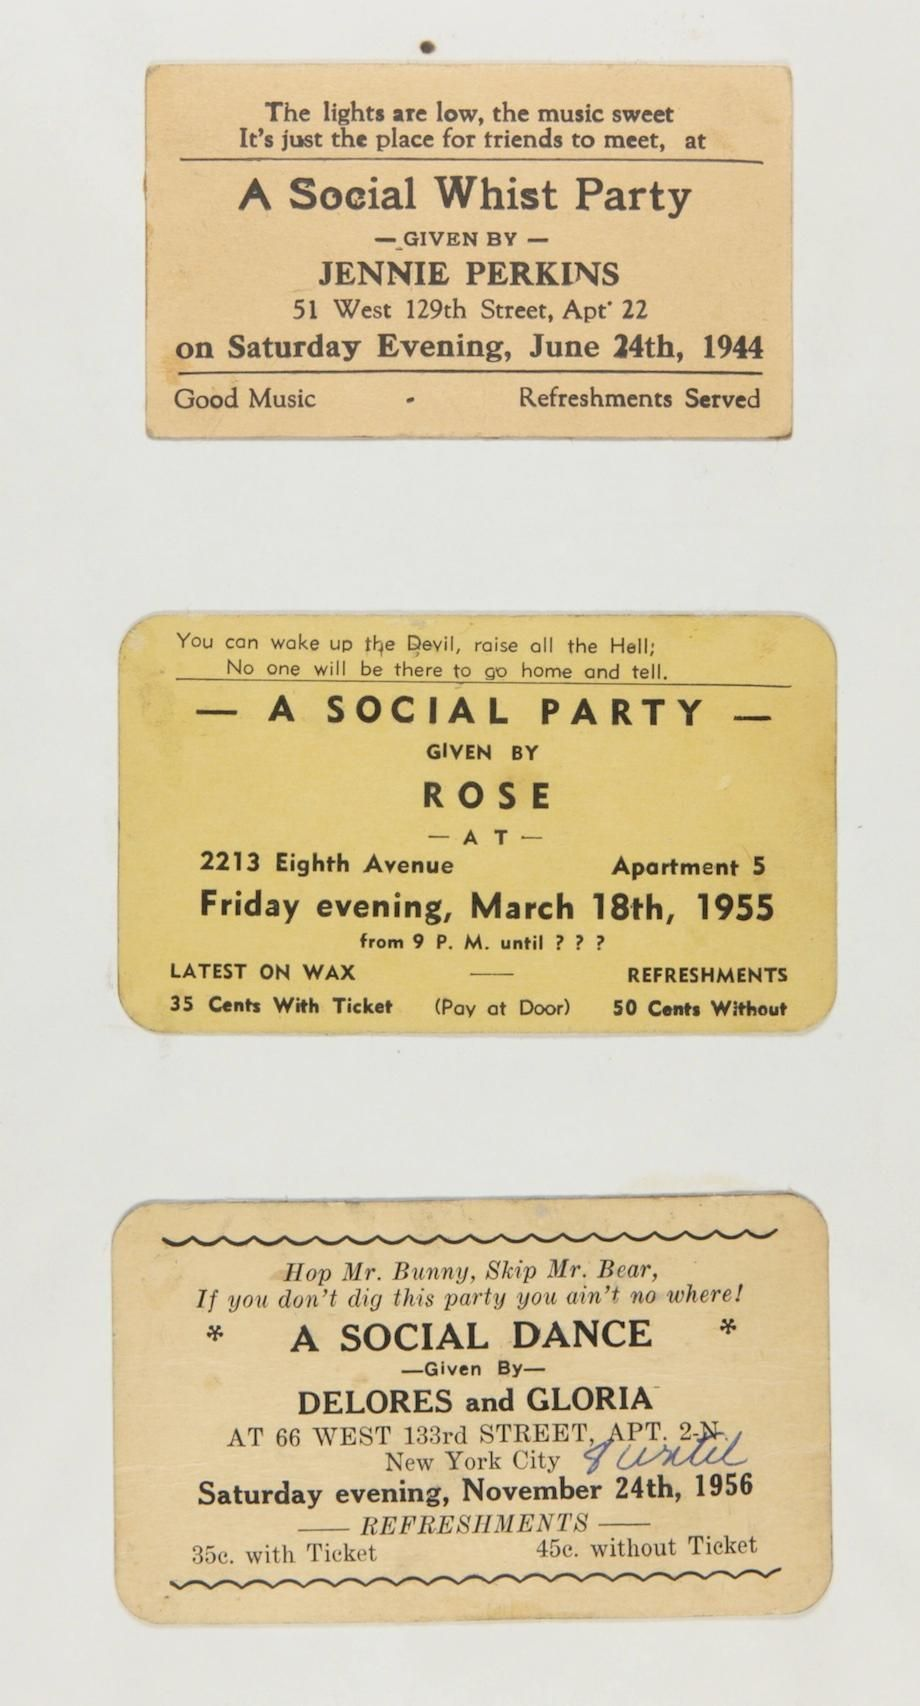 Langston Hughes' Collection of Harlem House Rent Party Cards